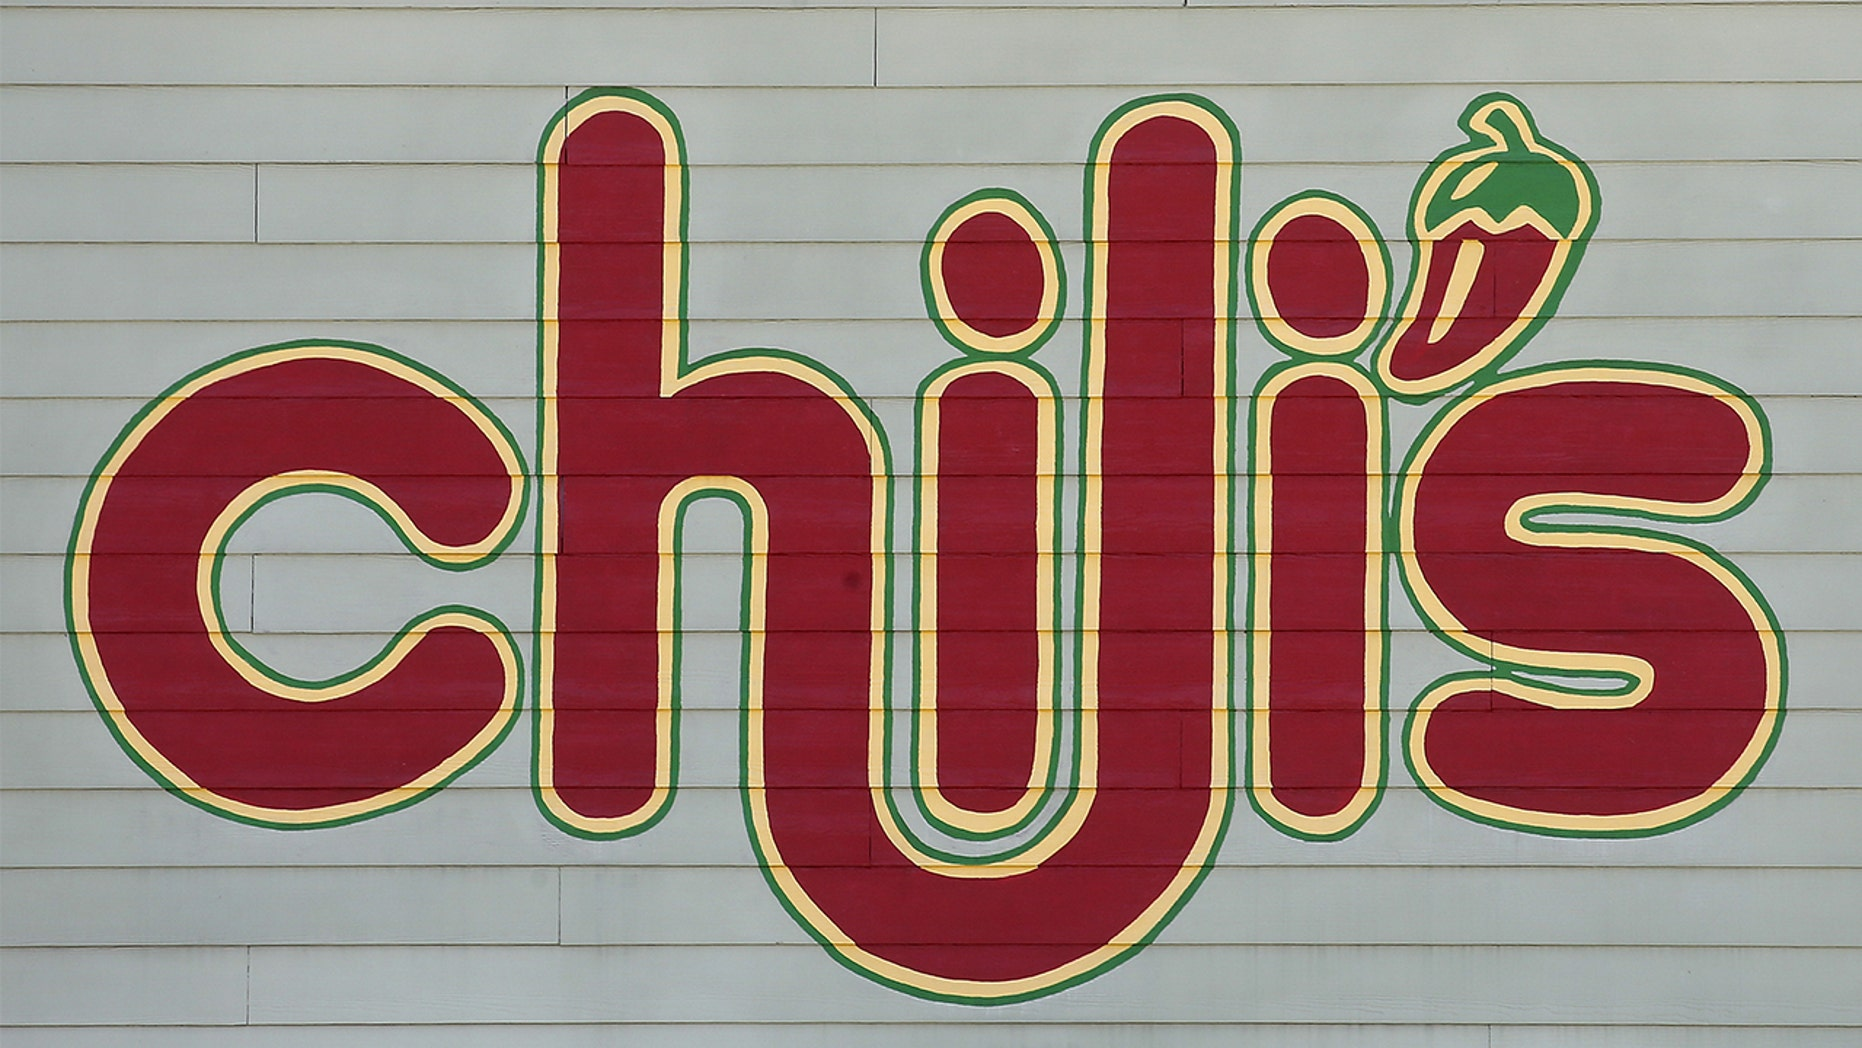 Grab your favorites while you can because Chili's is cutting its menu by 40 percent